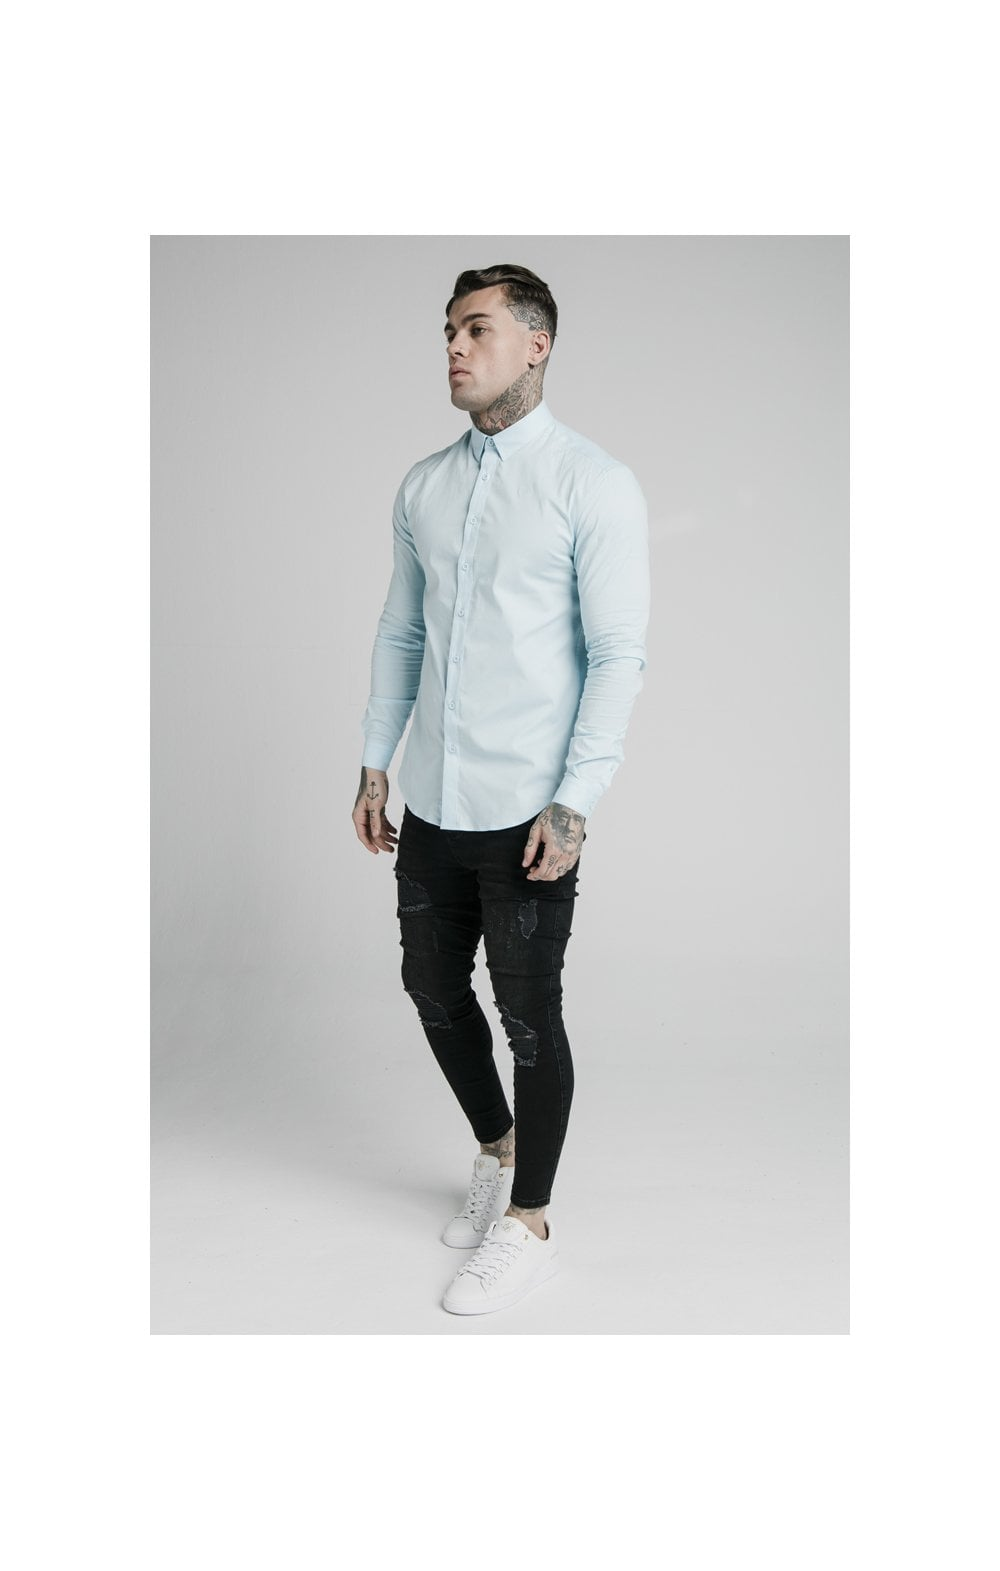 Load image into Gallery viewer, SikSilk L/S Cotton Stretch Shirt - Light Blue (3)